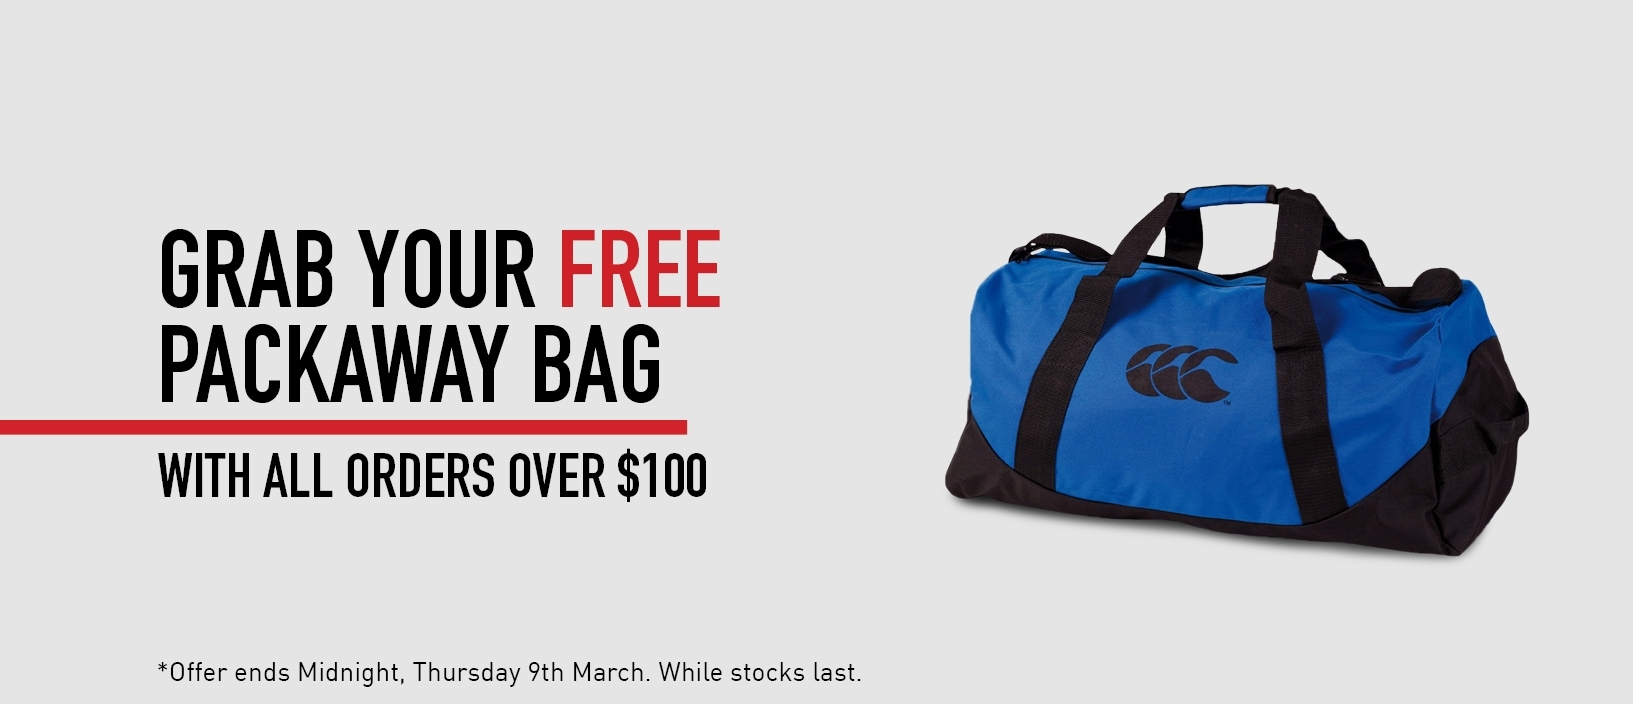 Free Packaway Bag with $100 spend